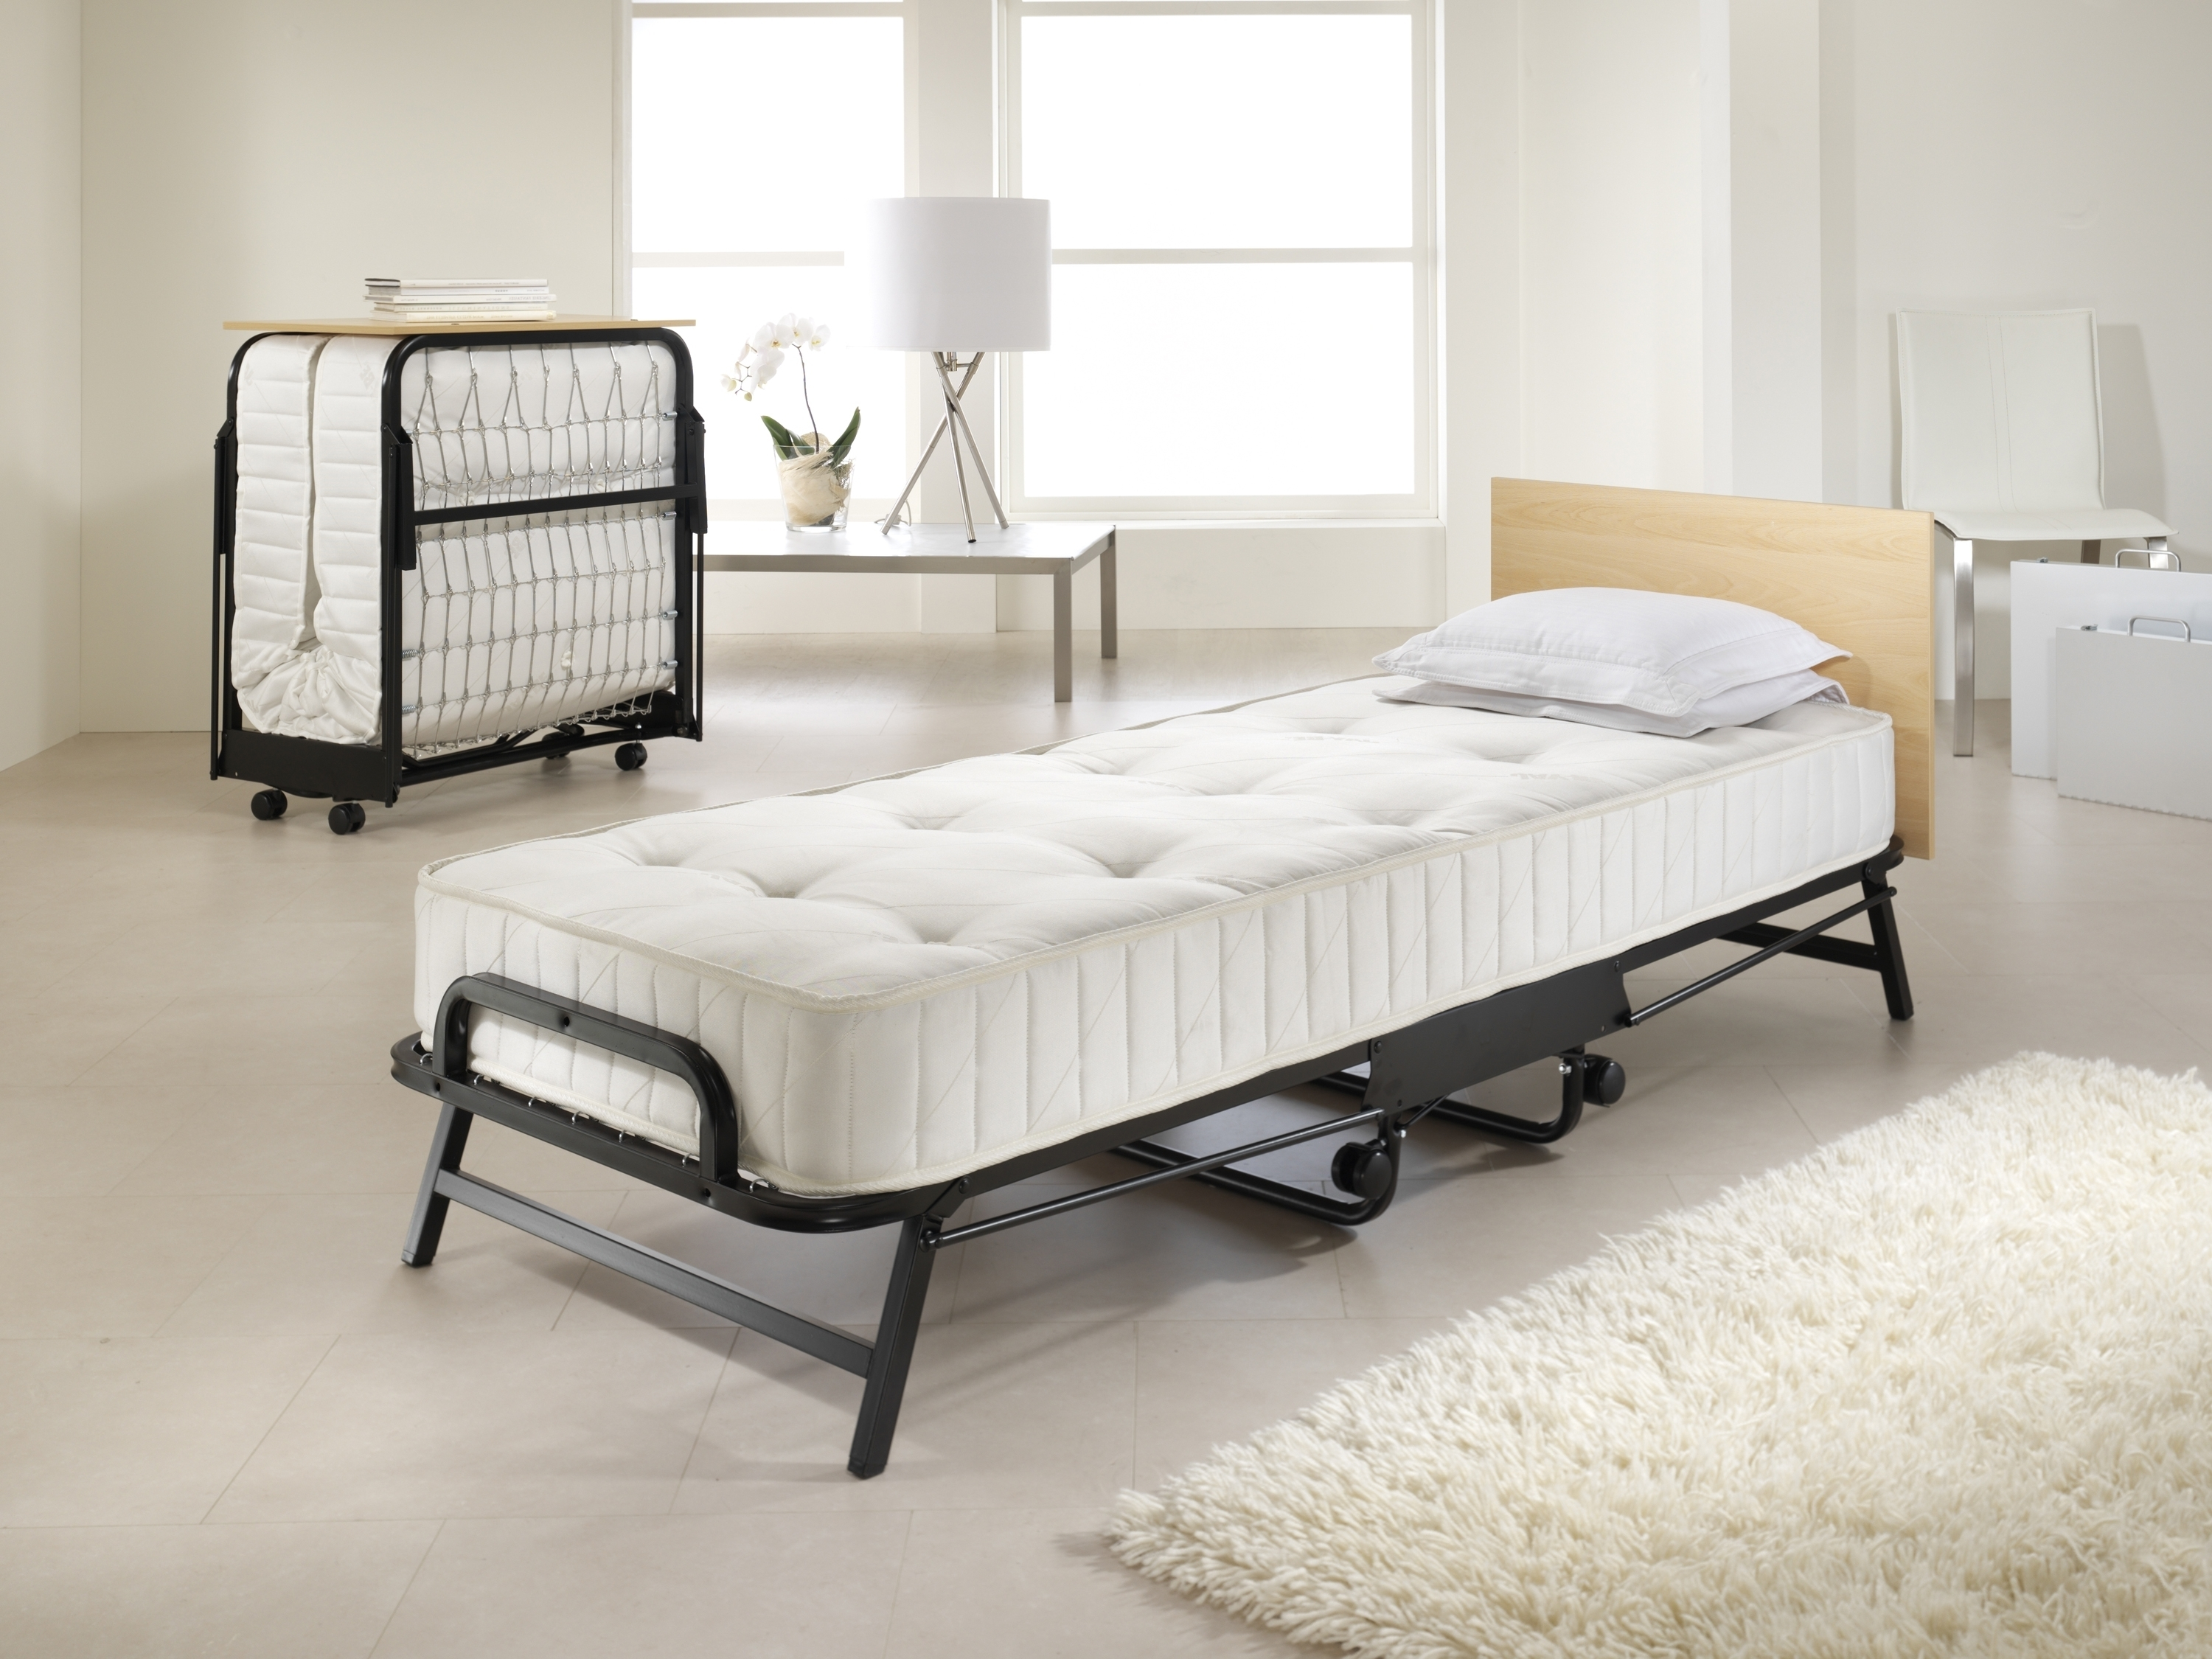 Permalink to Bed Frame Styles Types